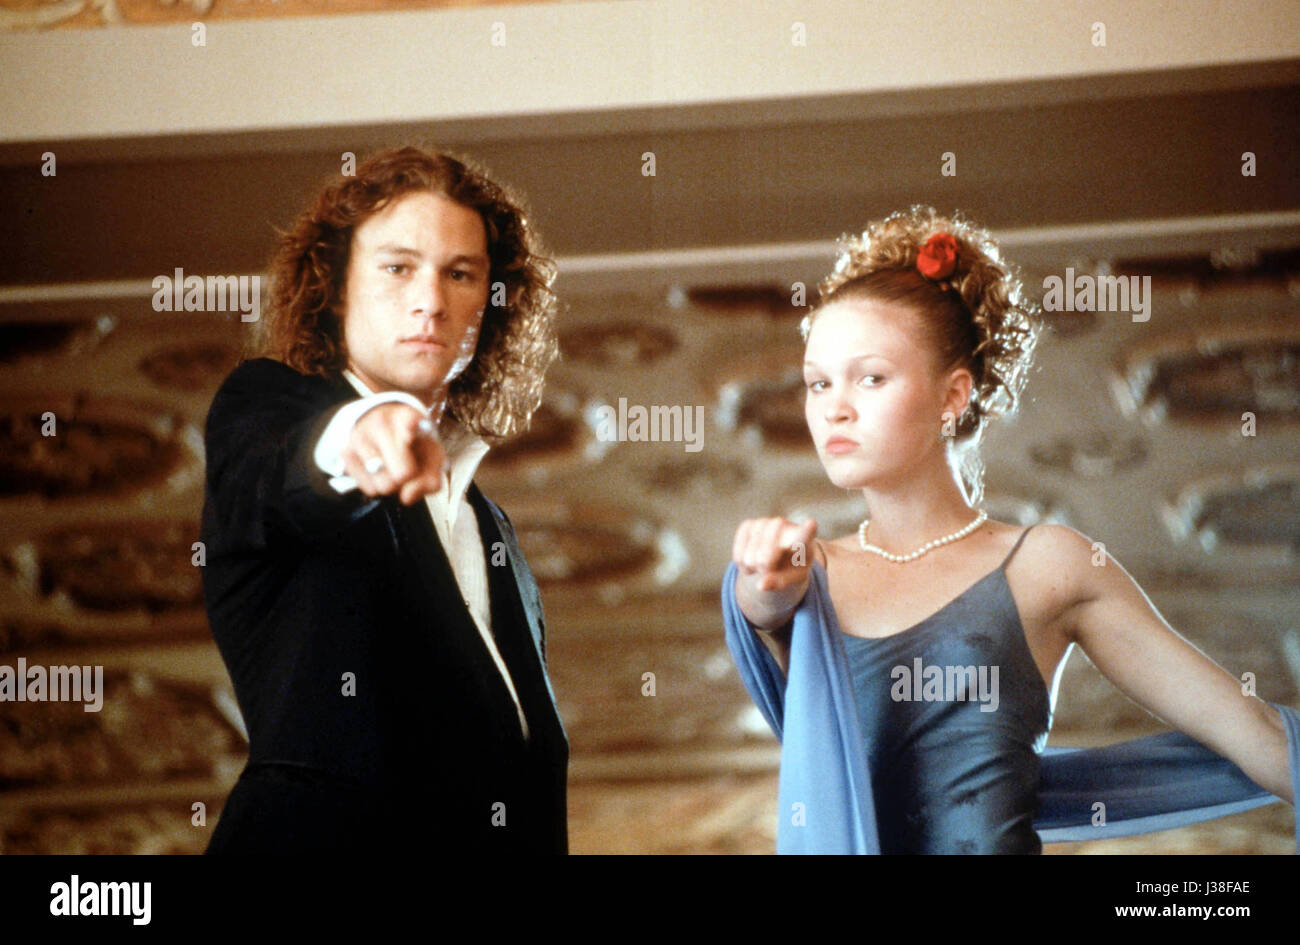 10 THINGS I HATE ABOUT YOU (1999)  HEATH LEDGER  JULIA STILES  GIL YUNGER (DIR)  TOUCHSTONE PICTURES/MOVIESTORE - Stock Image